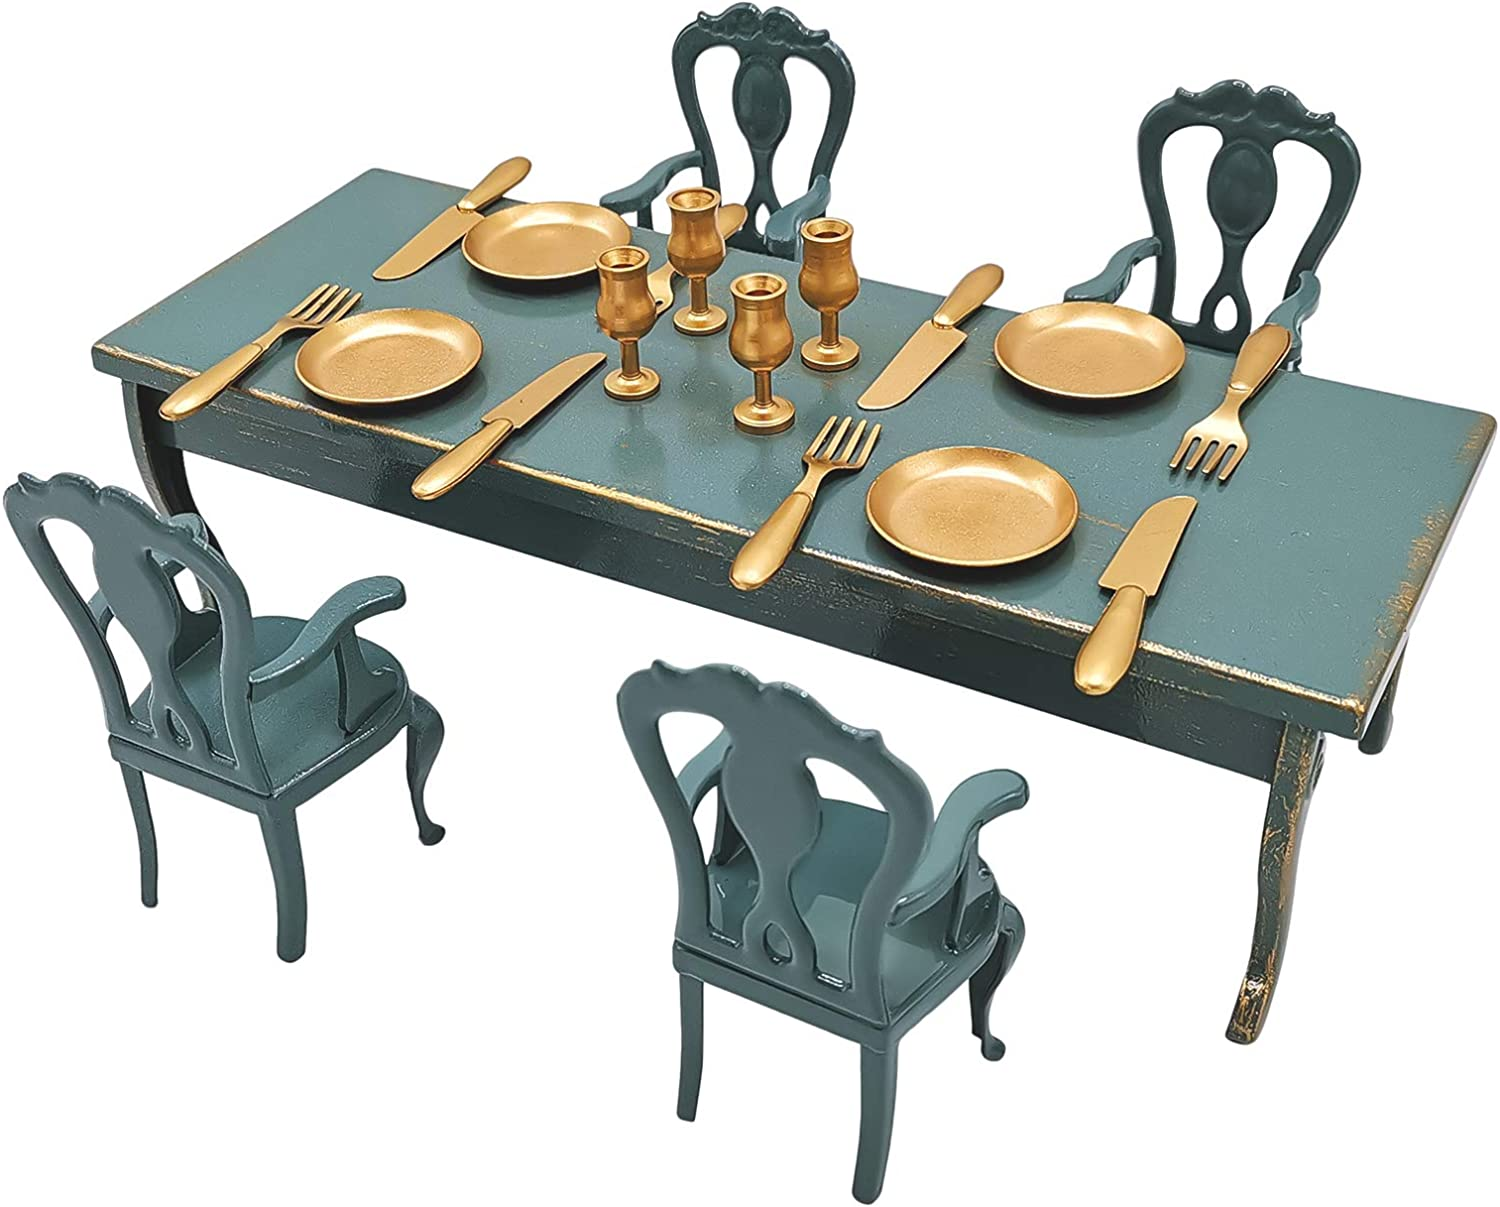 Aizulhomey Metal Dollhouse Miniature Furniture Mini Dining Table Chair and Tableware Set Perfect for Barbie Dollhouse Furniture and Accessories 1/12 Scaled 21Pcs